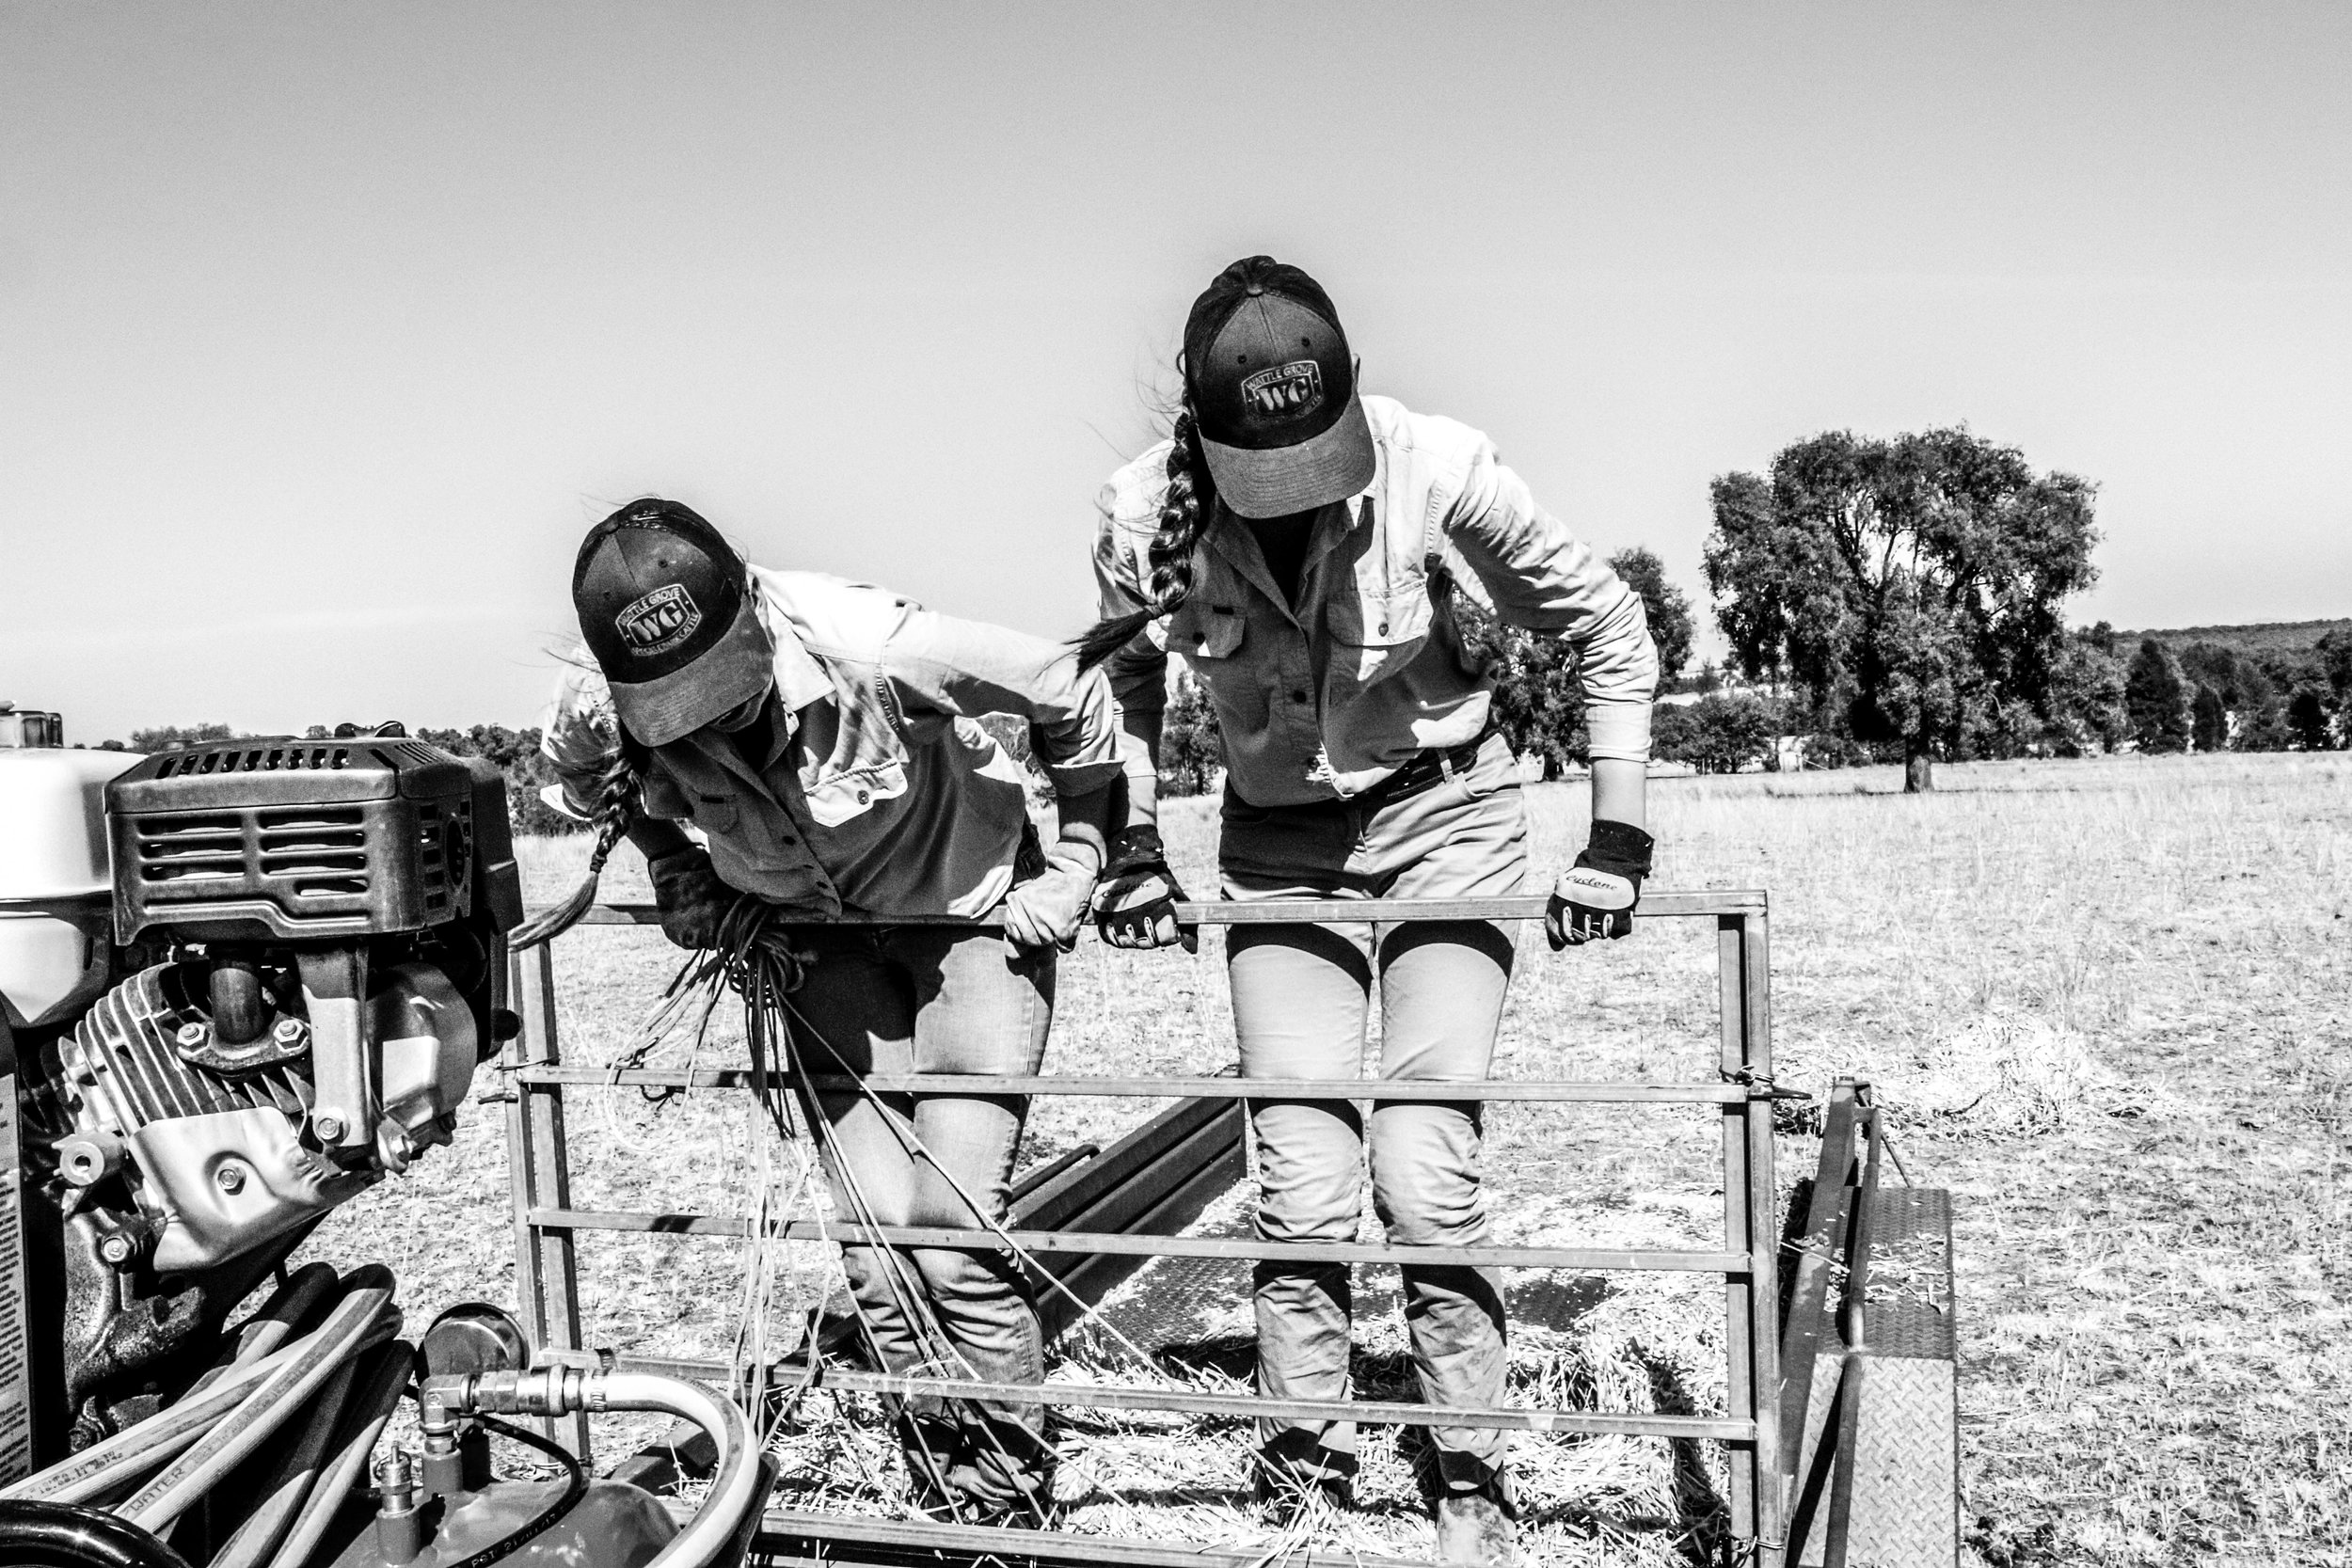 'She was powerful'. Image and quote via Benita Woodley's Instagram,  @_girlbehindthecamera_  This image depicts two of Benita's sisters at work on the family farm.